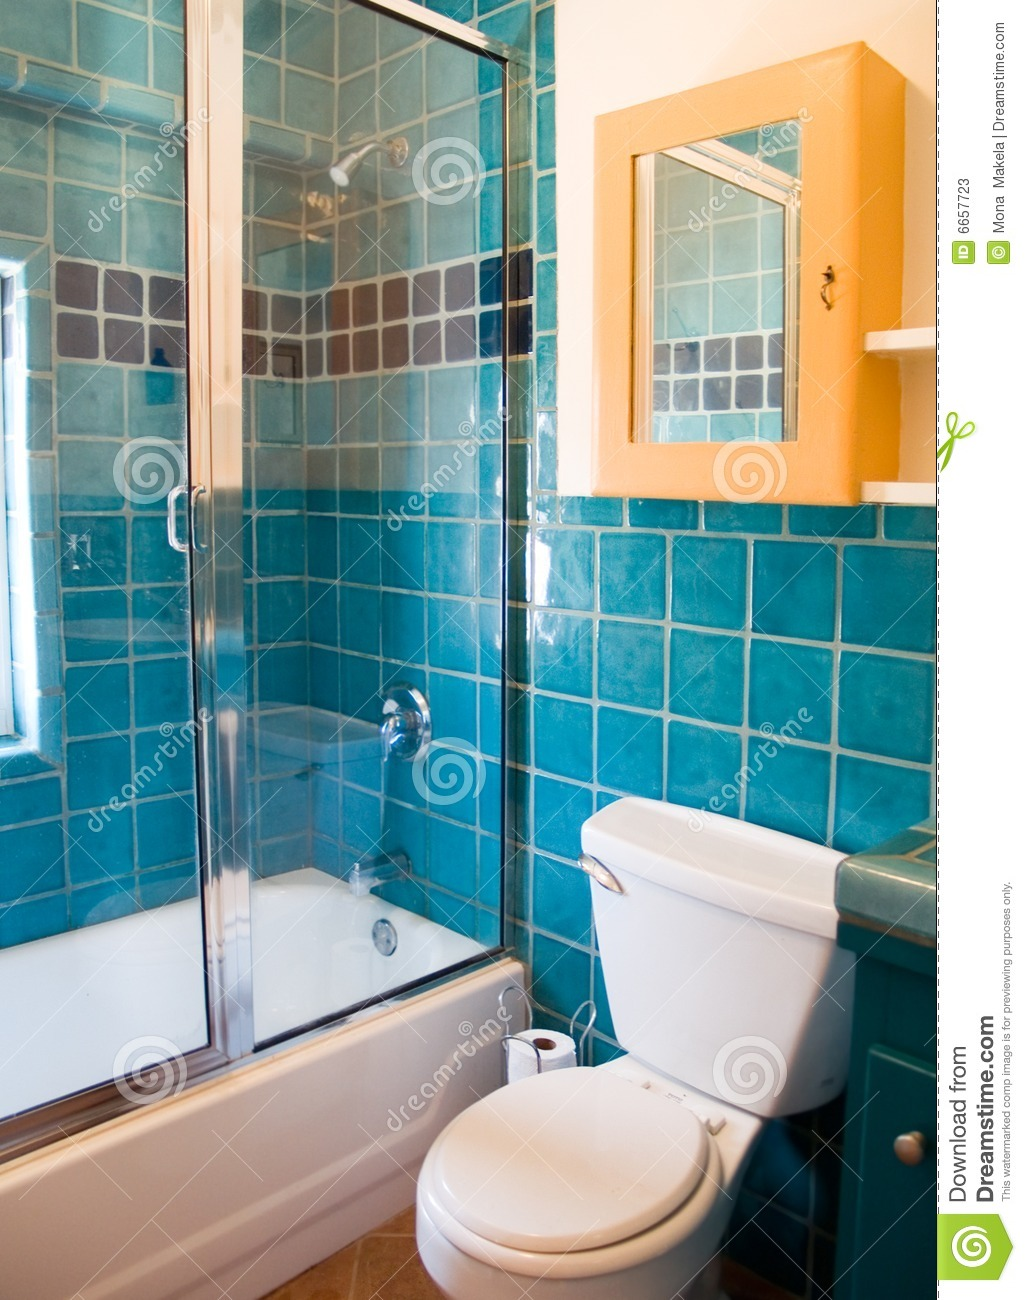 Turquoise tile work in a bathroom stock photos image - Turquoise bathroom floor tiles ...